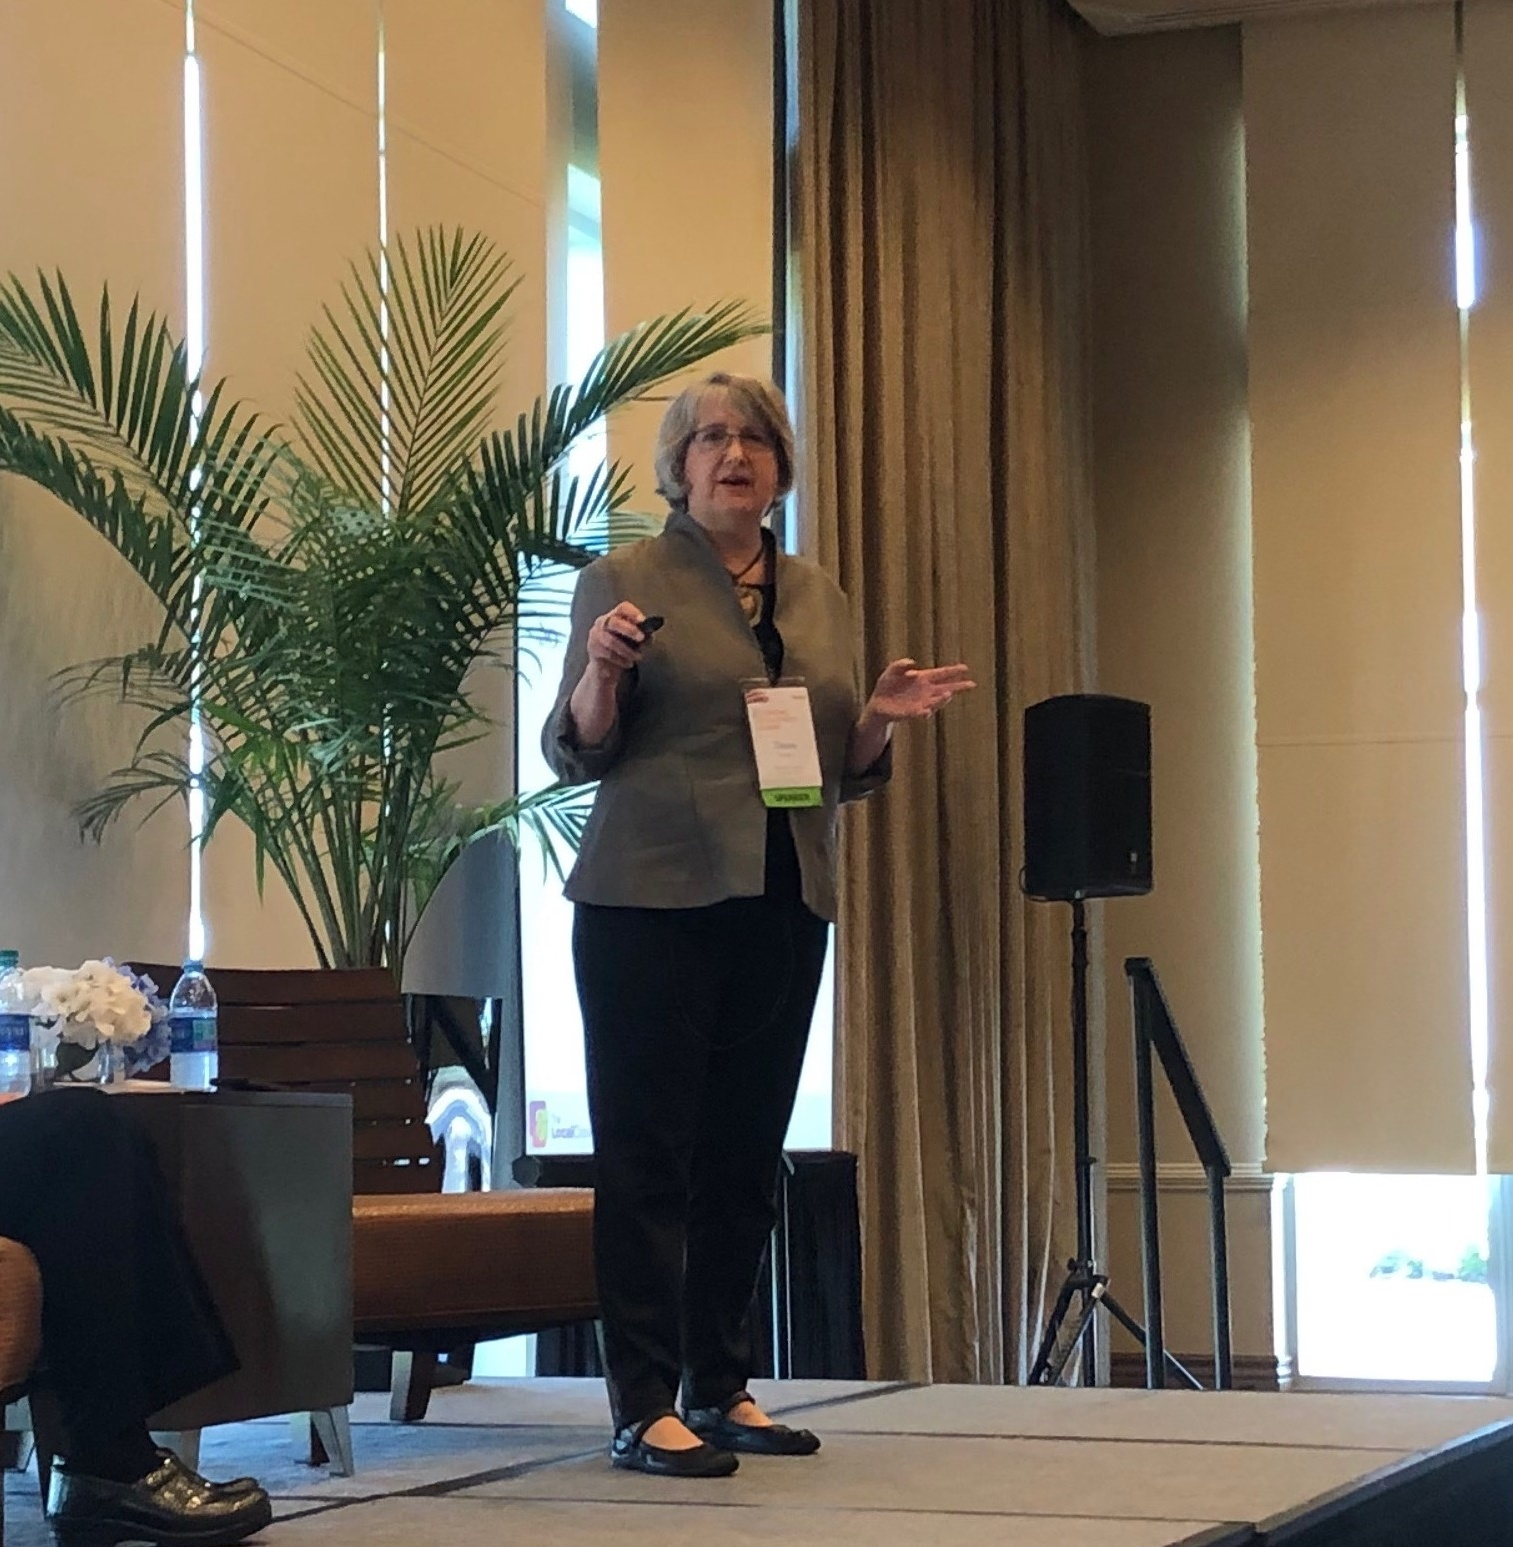 Diane Sontum on stage giving a presentation